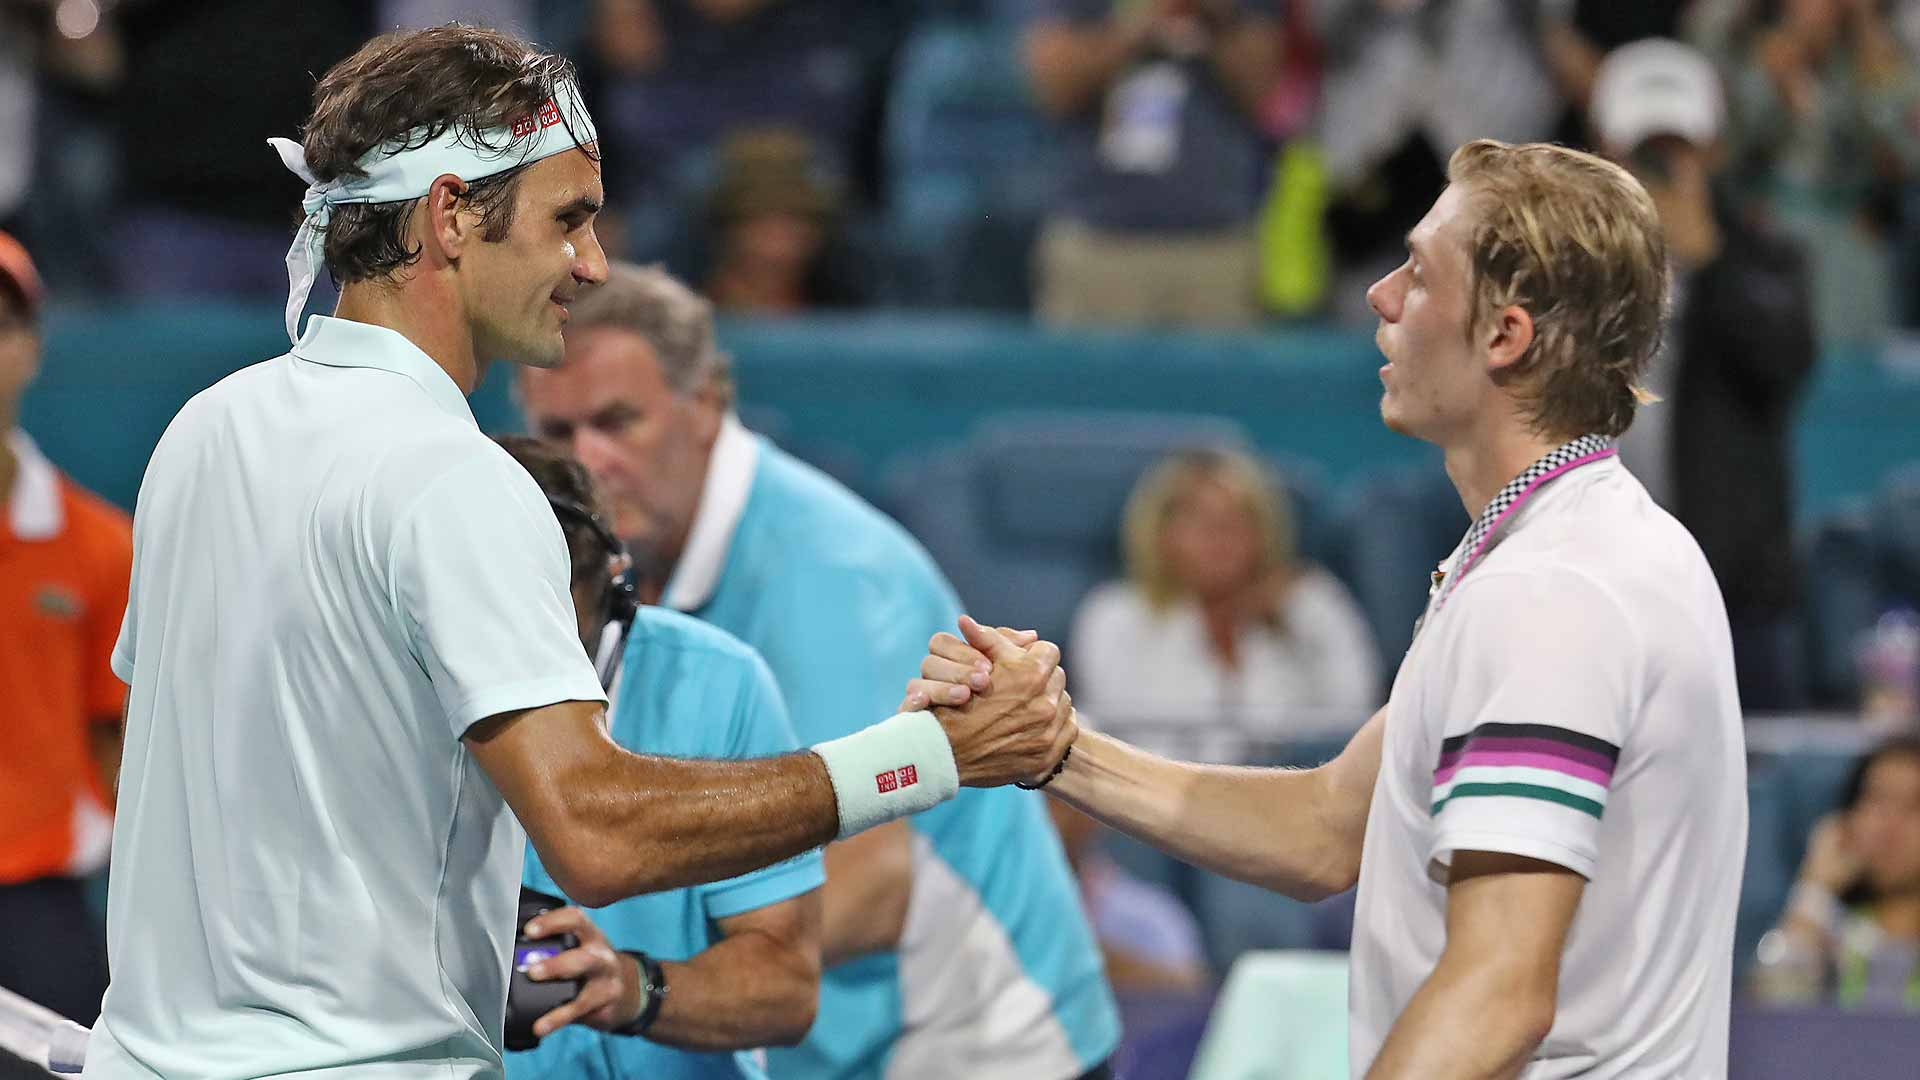 Federer shakes hands with Shapovalov after their Miami semi-final